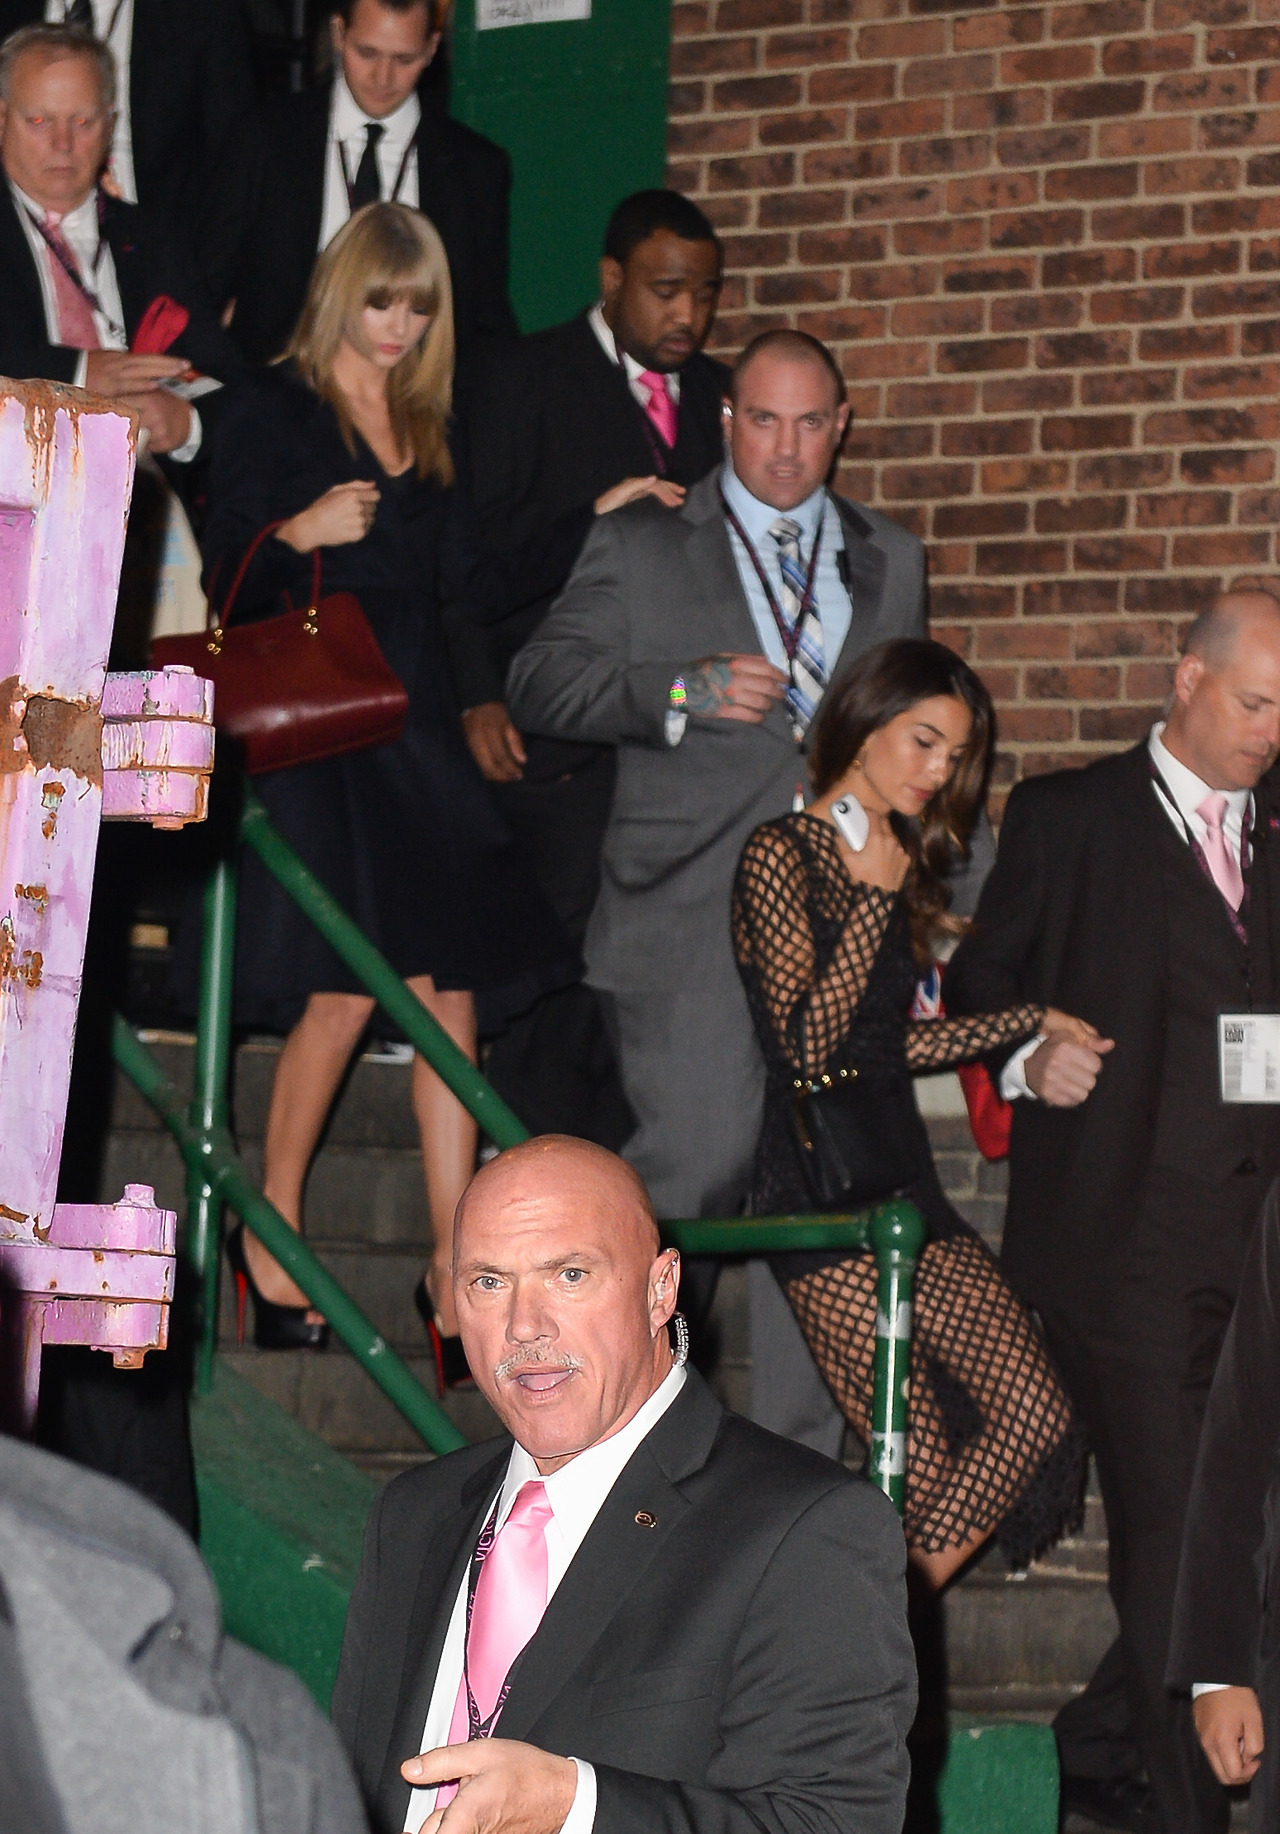 http://www.taylorpictures.net/albums/candids/2013/11-13leavingthevictoriassecretfashionshow/001.jpg